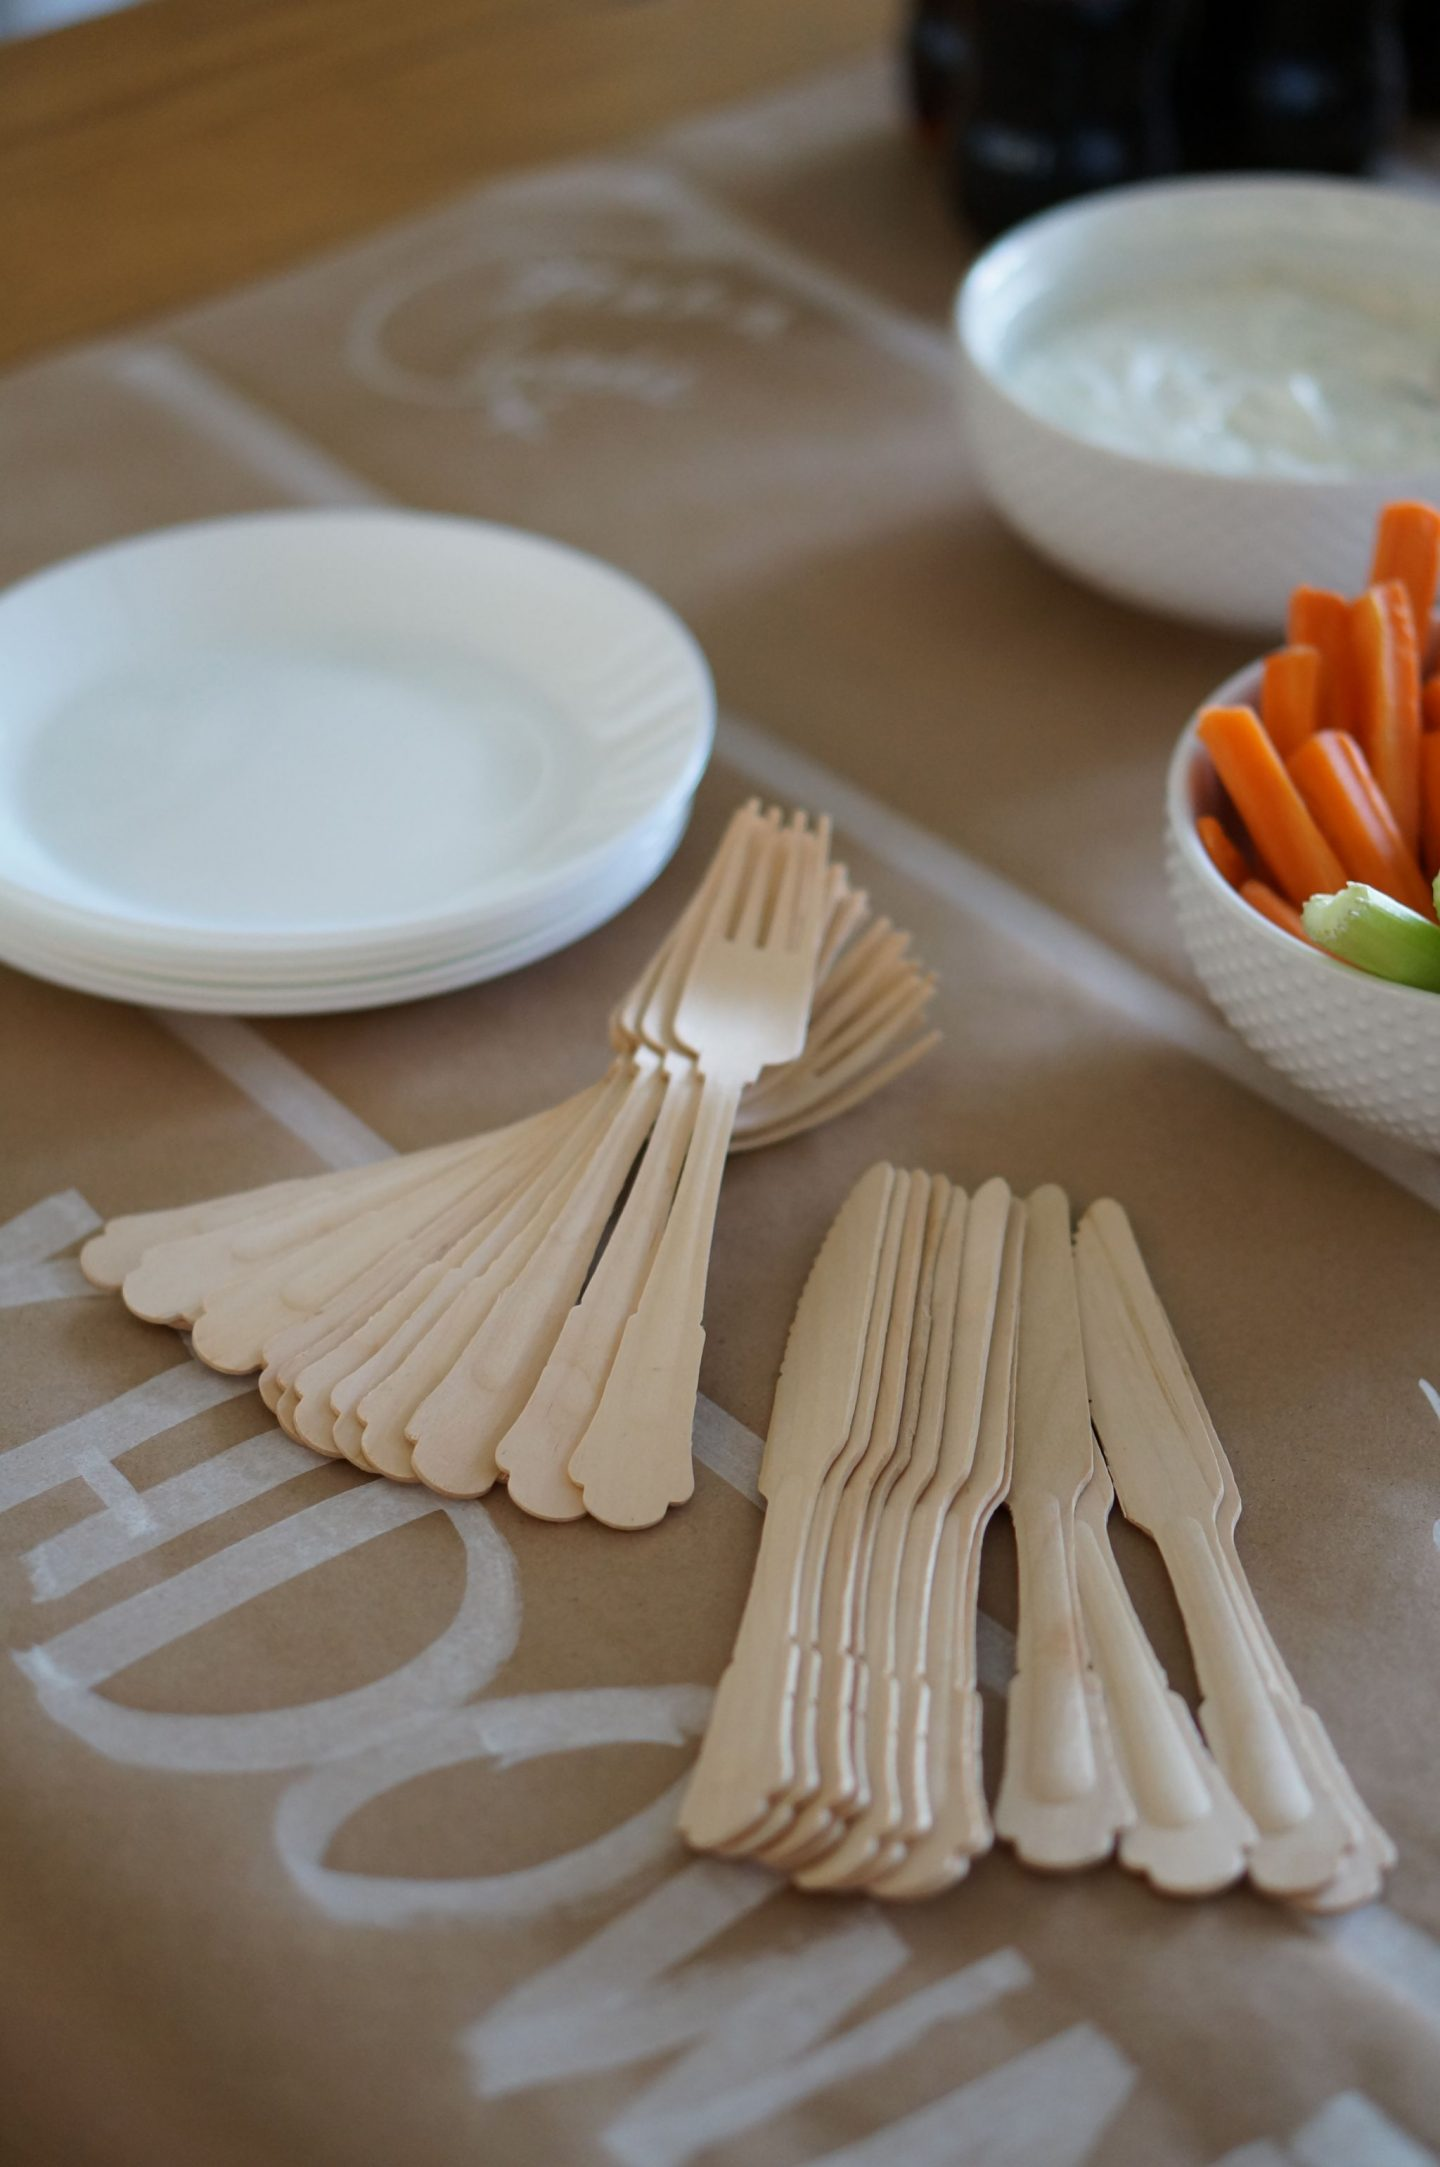 Popular North Carolina blogger Rebecca Lately shares a fun DIY table runner and football snacks for a simple and fun homegating party.